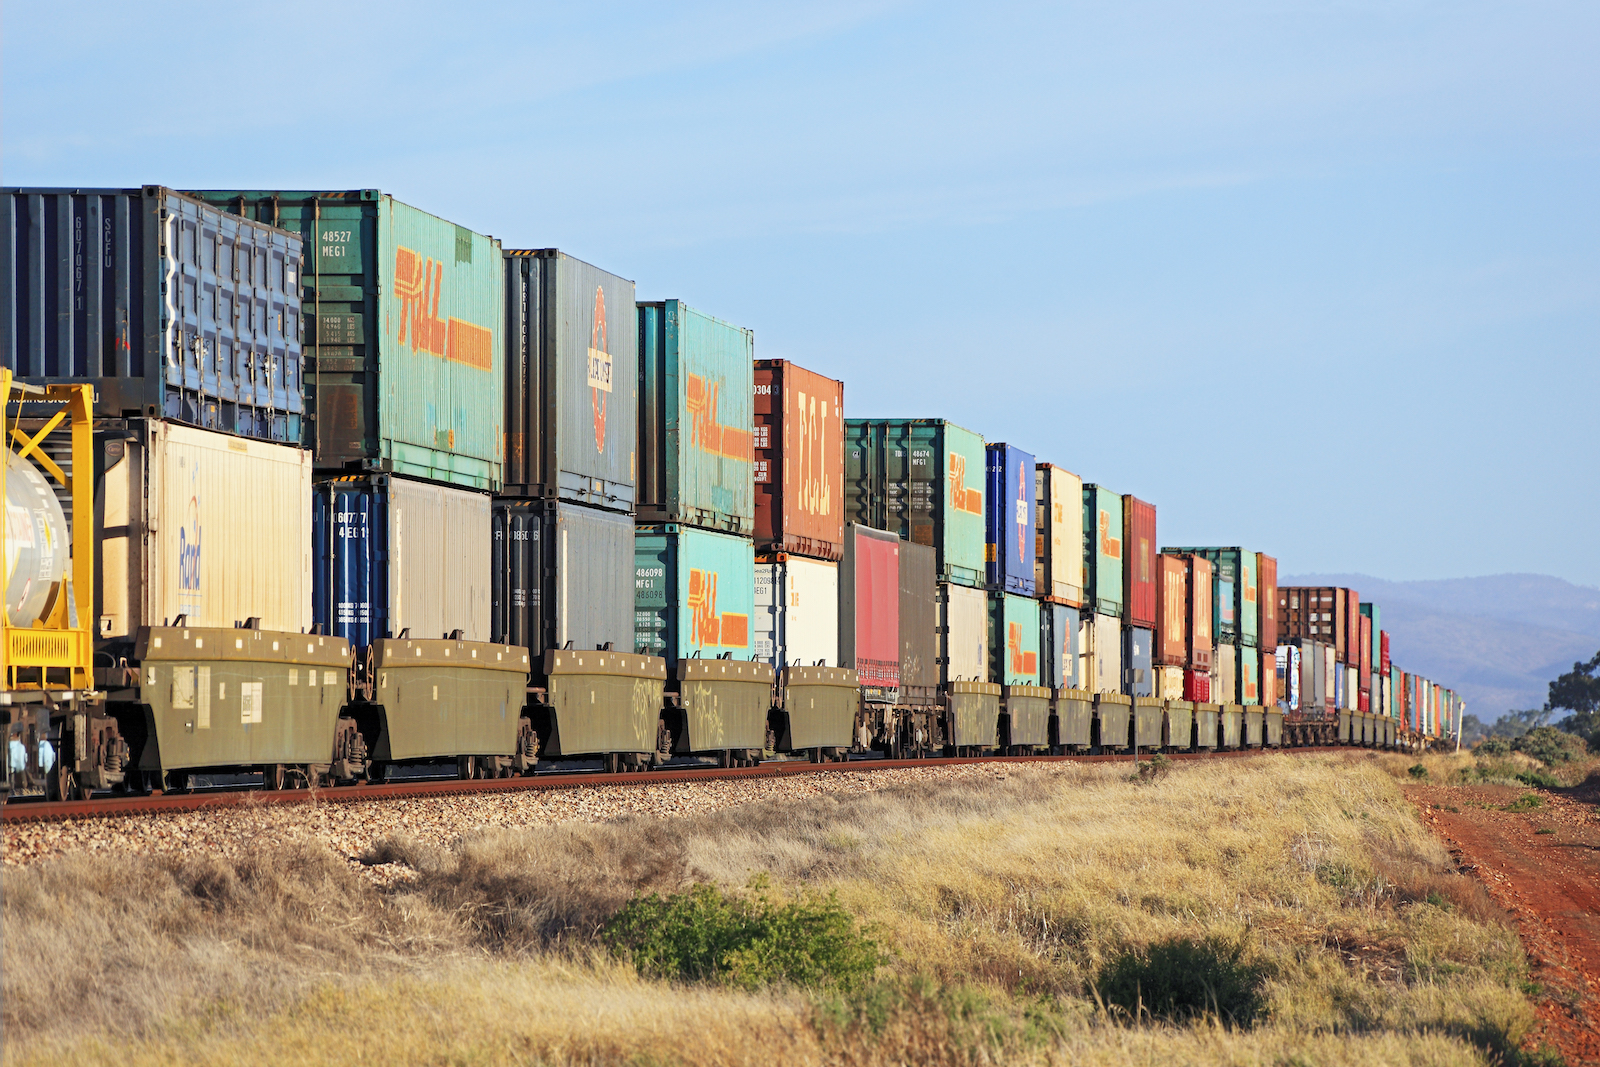 Inland Rail train carrying multiple shipping containers, Australia